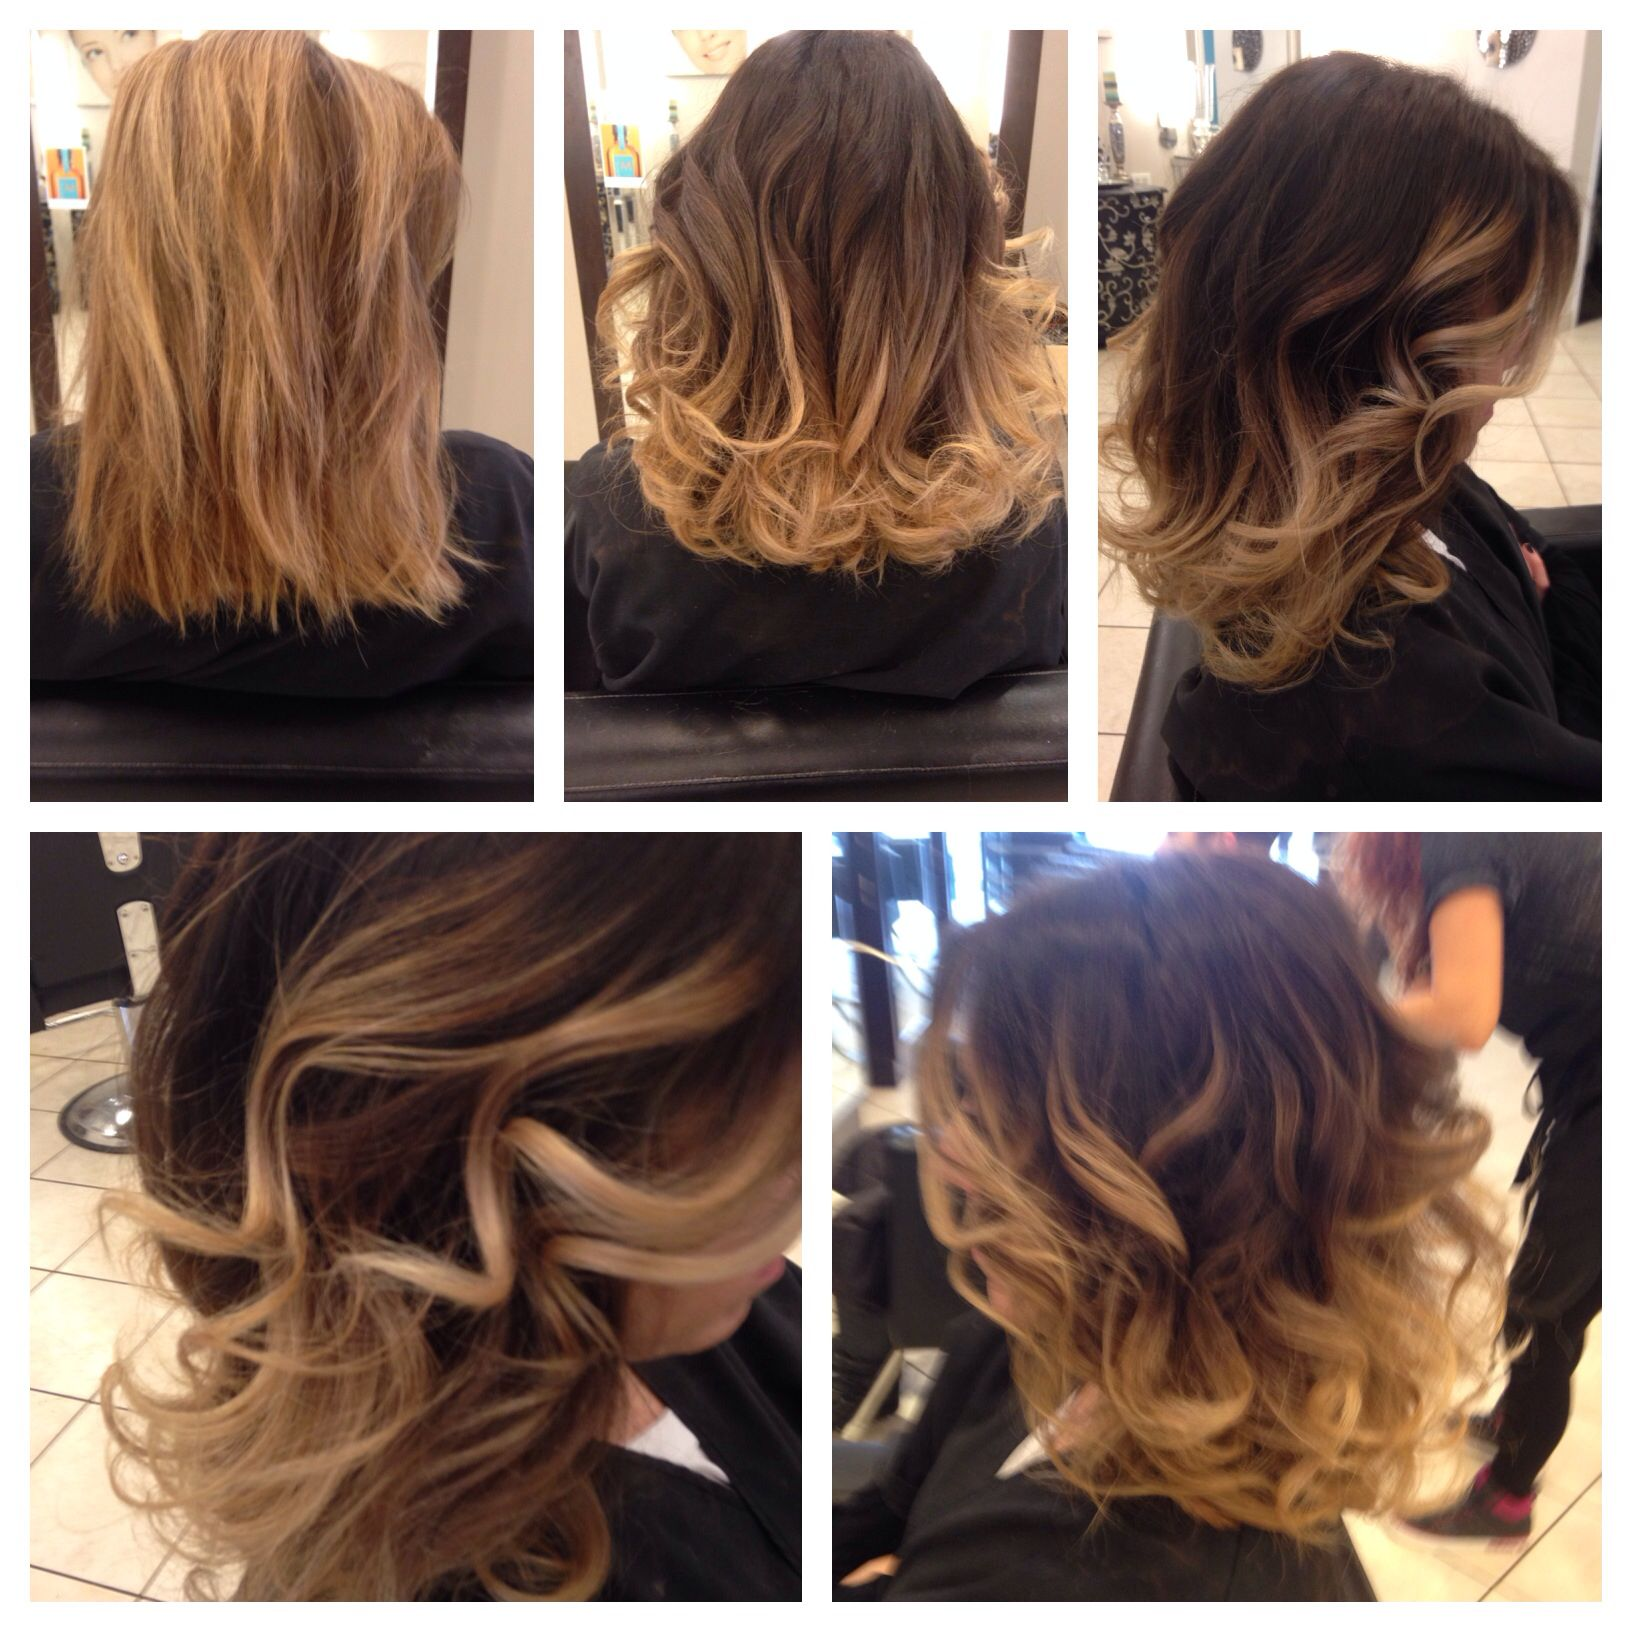 Short caramel ombre with some soft waves